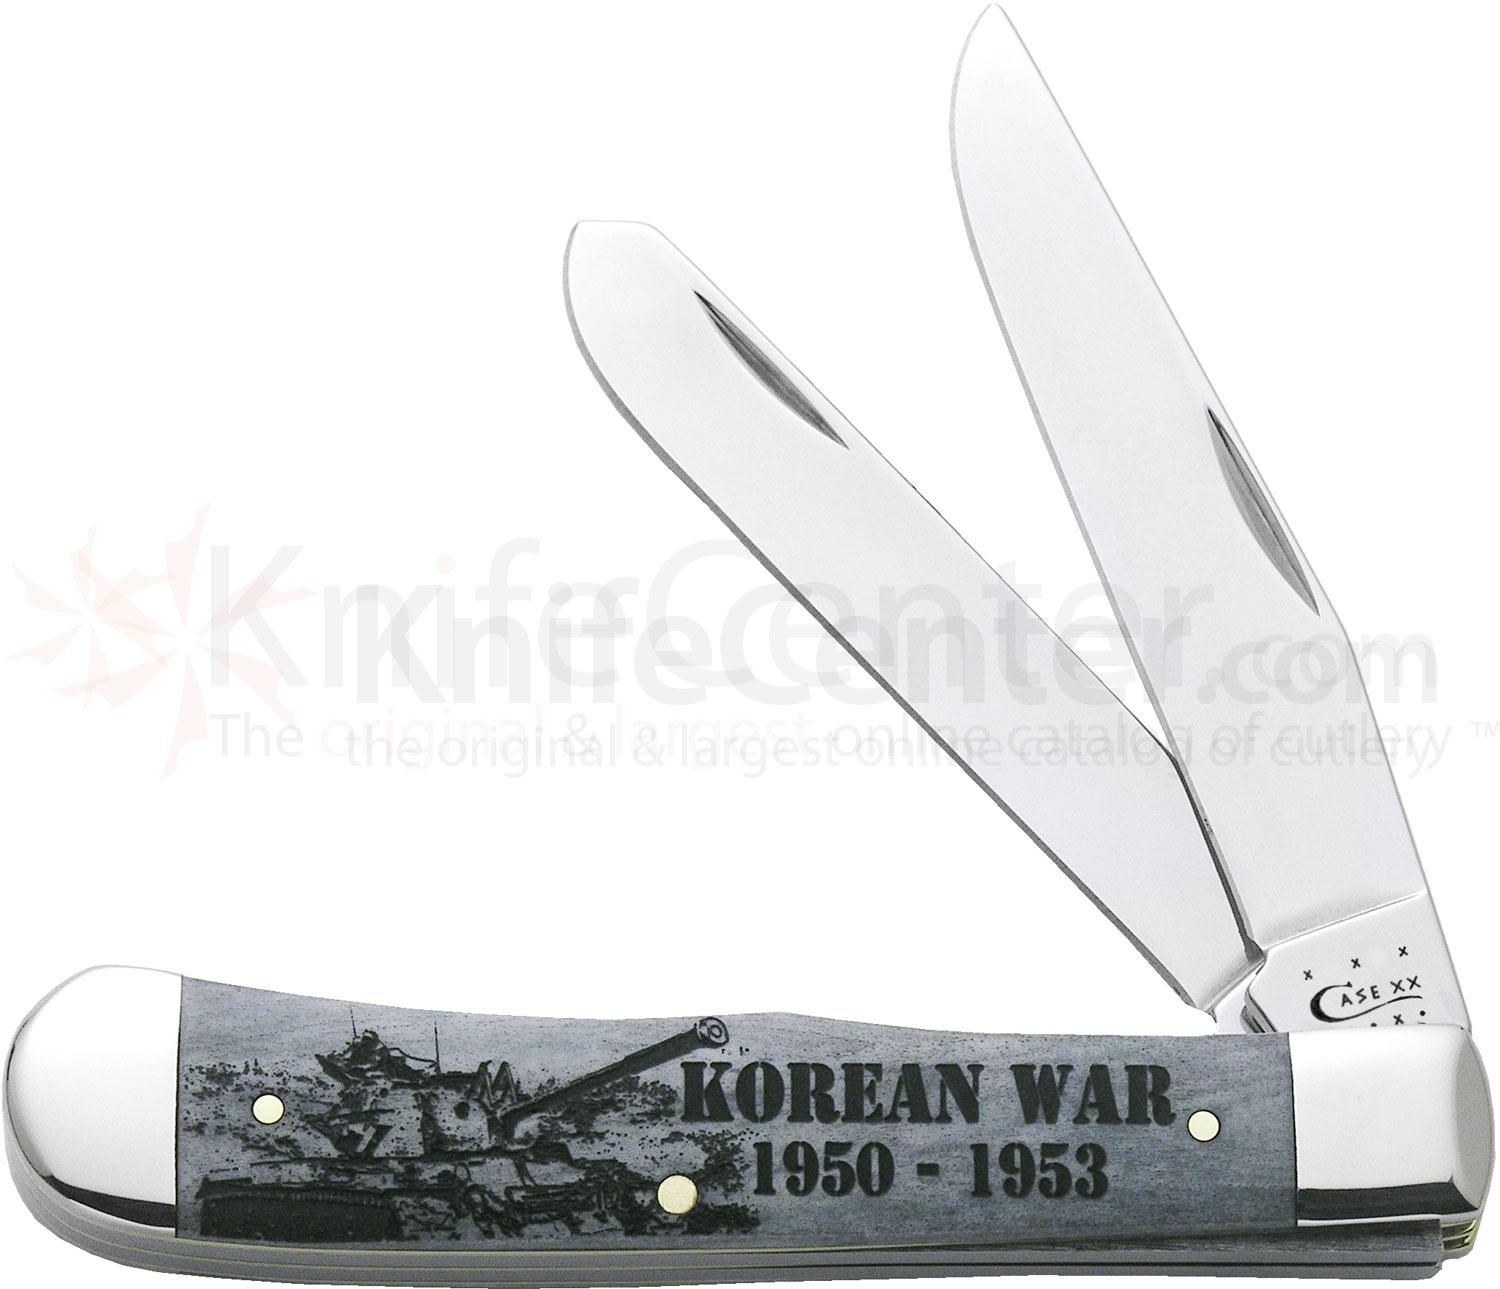 Case Image XX War Trapper (Korean War) 4-1/8 inch Closed (6254 SS)